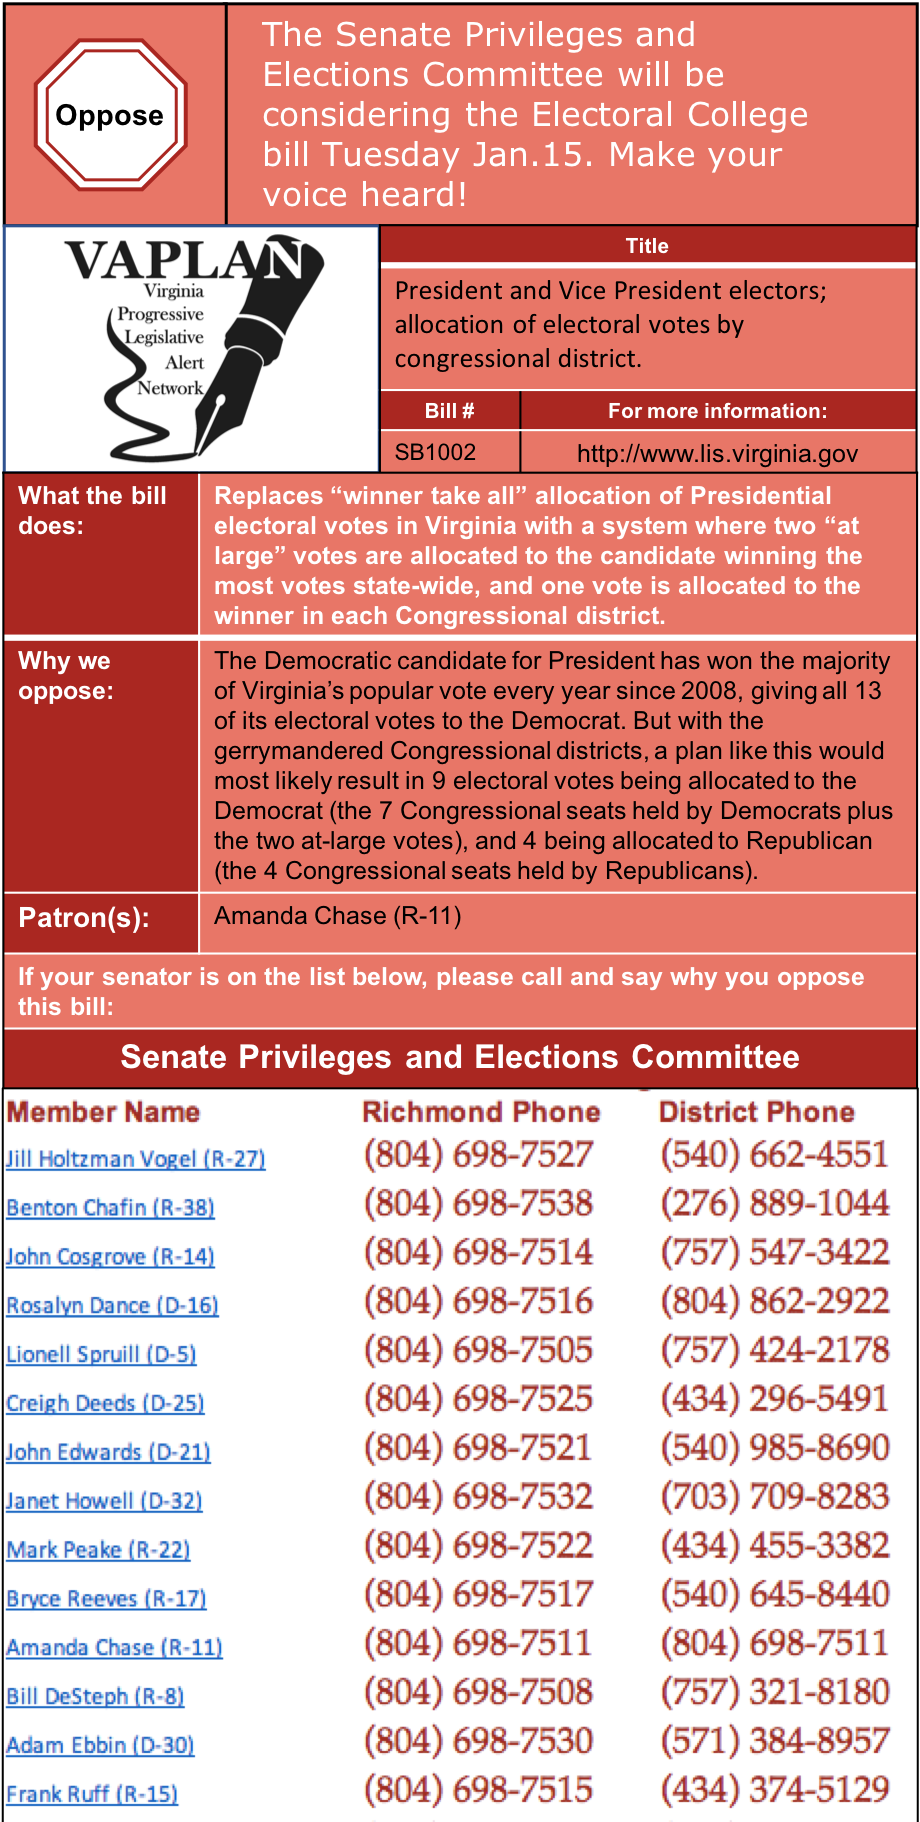 ALERT: Oppose Electoral College Change (SB1002) in Senate Privileges and Elections